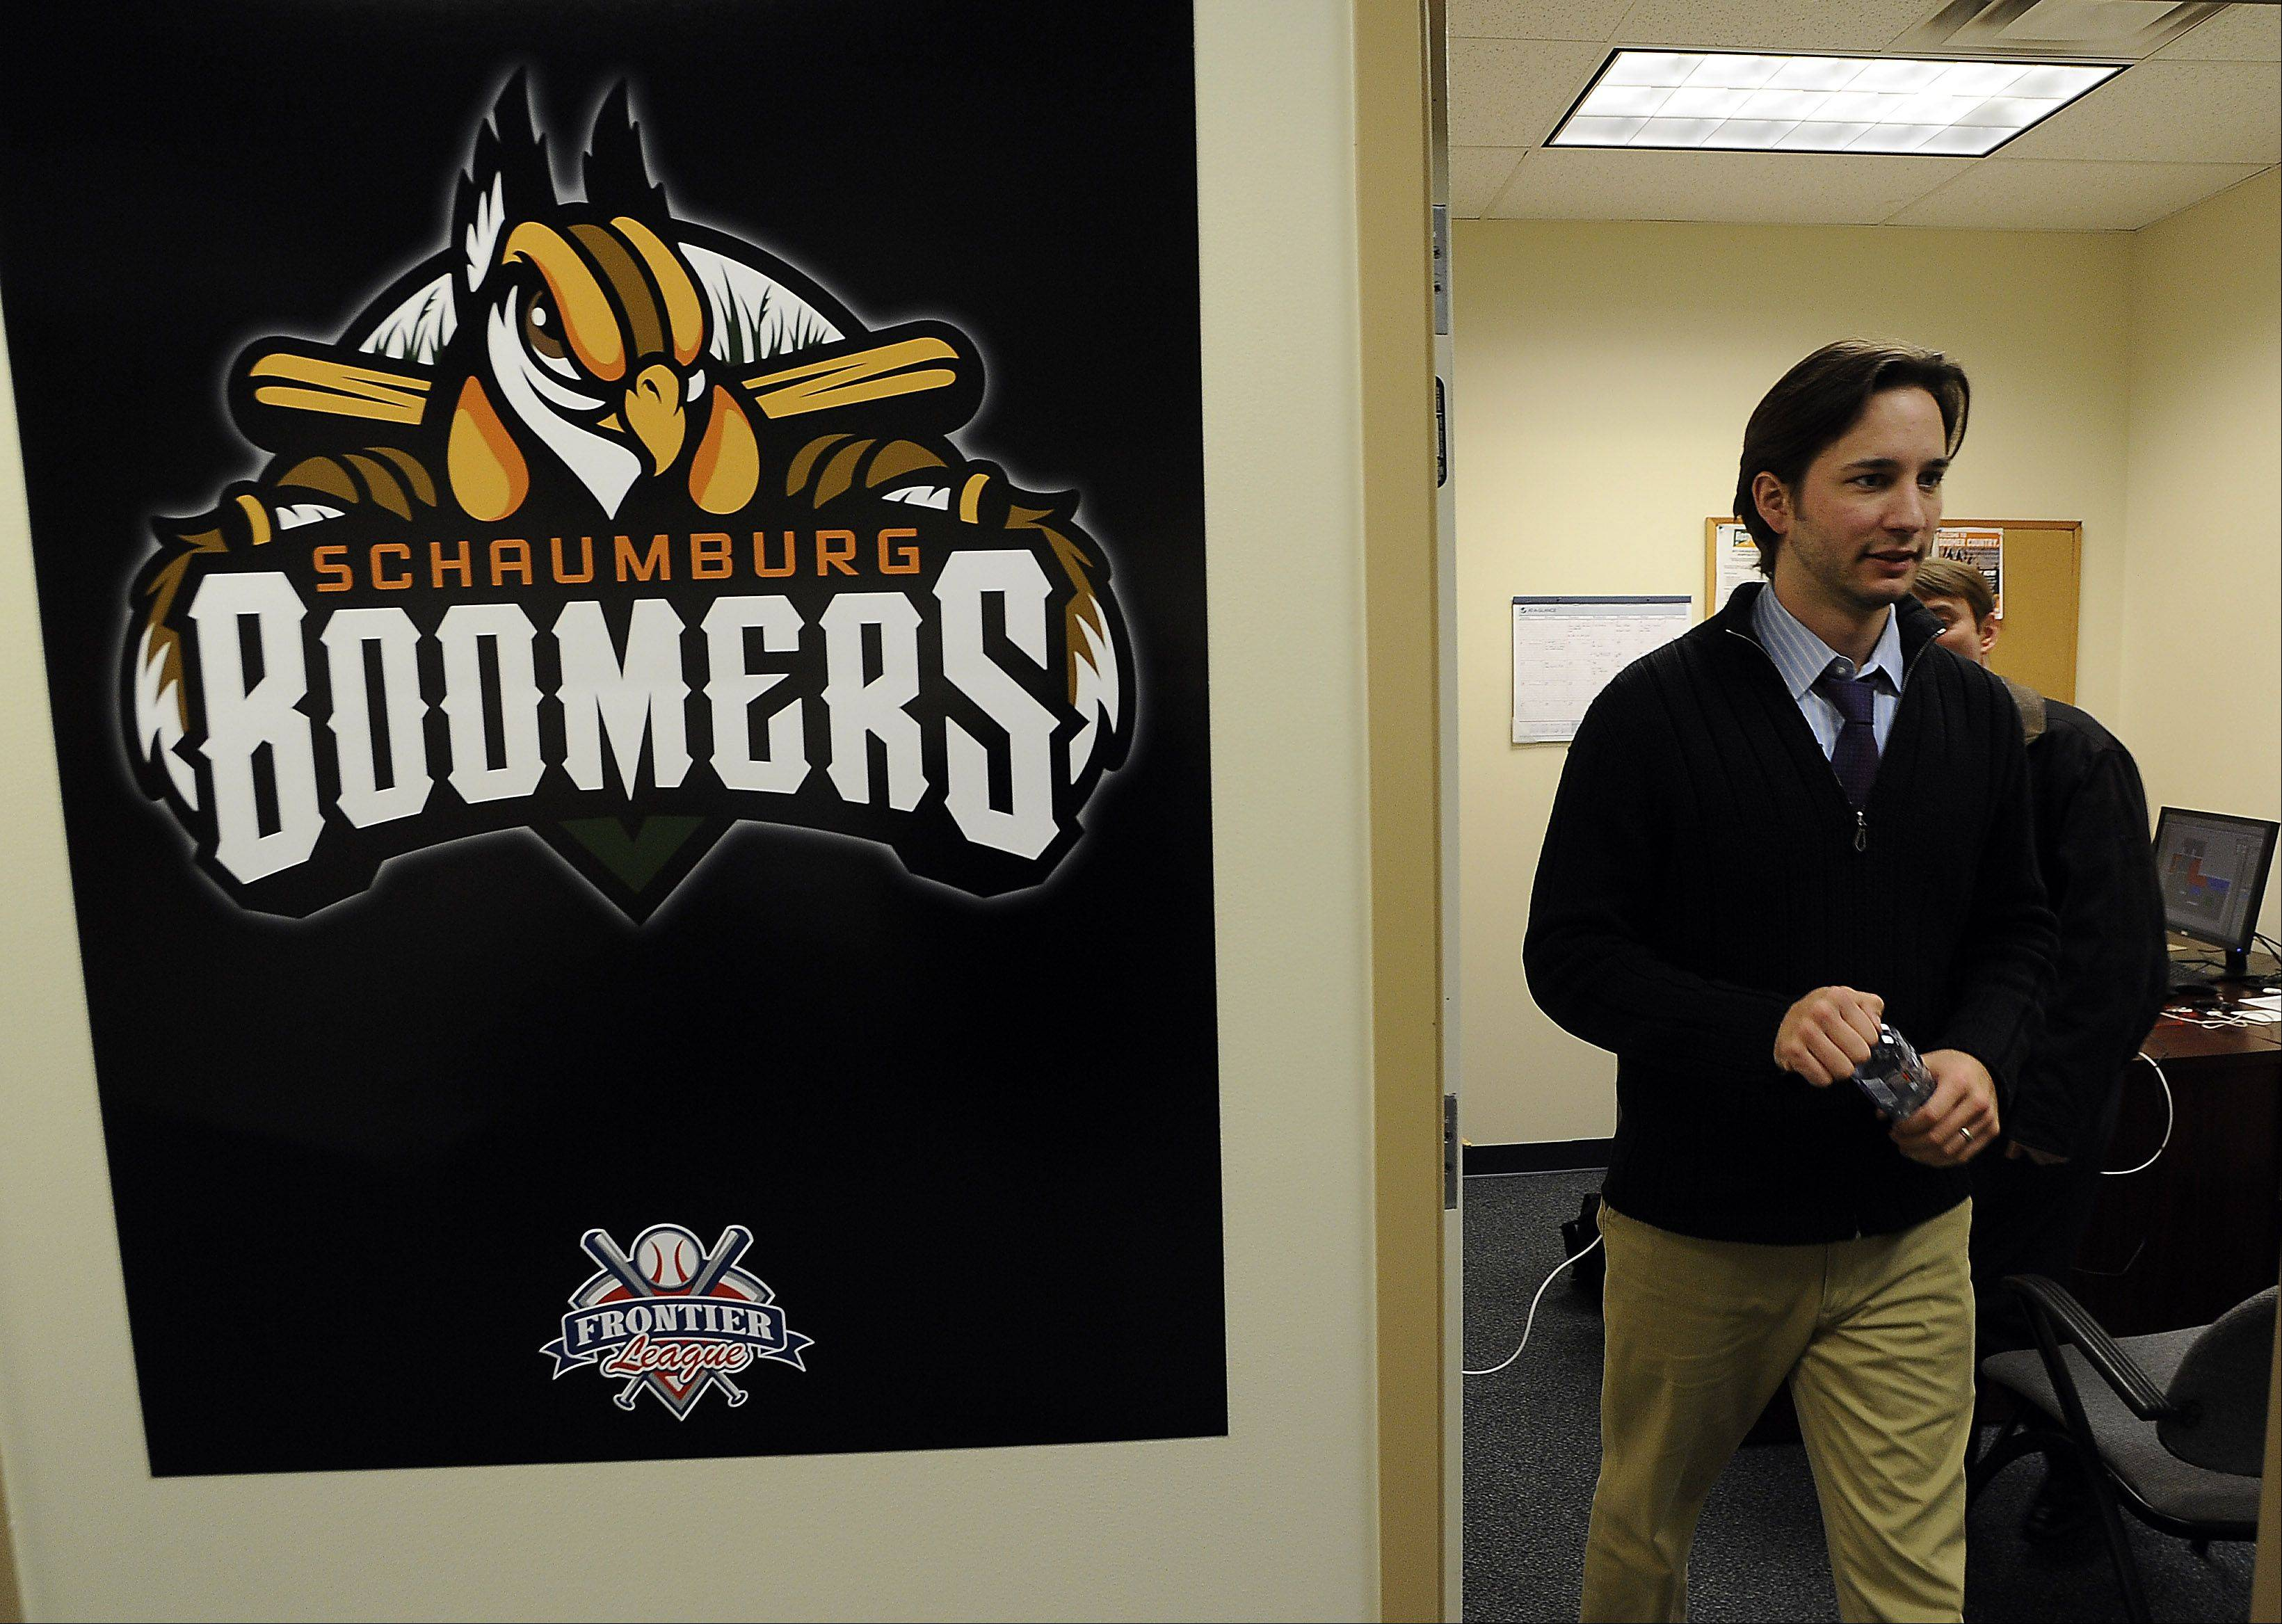 Dave Salvi, vice president of marketing and promotions for the Schaumbutg Boomers baseball team, leaves his office to check out the new turf grass on the field.